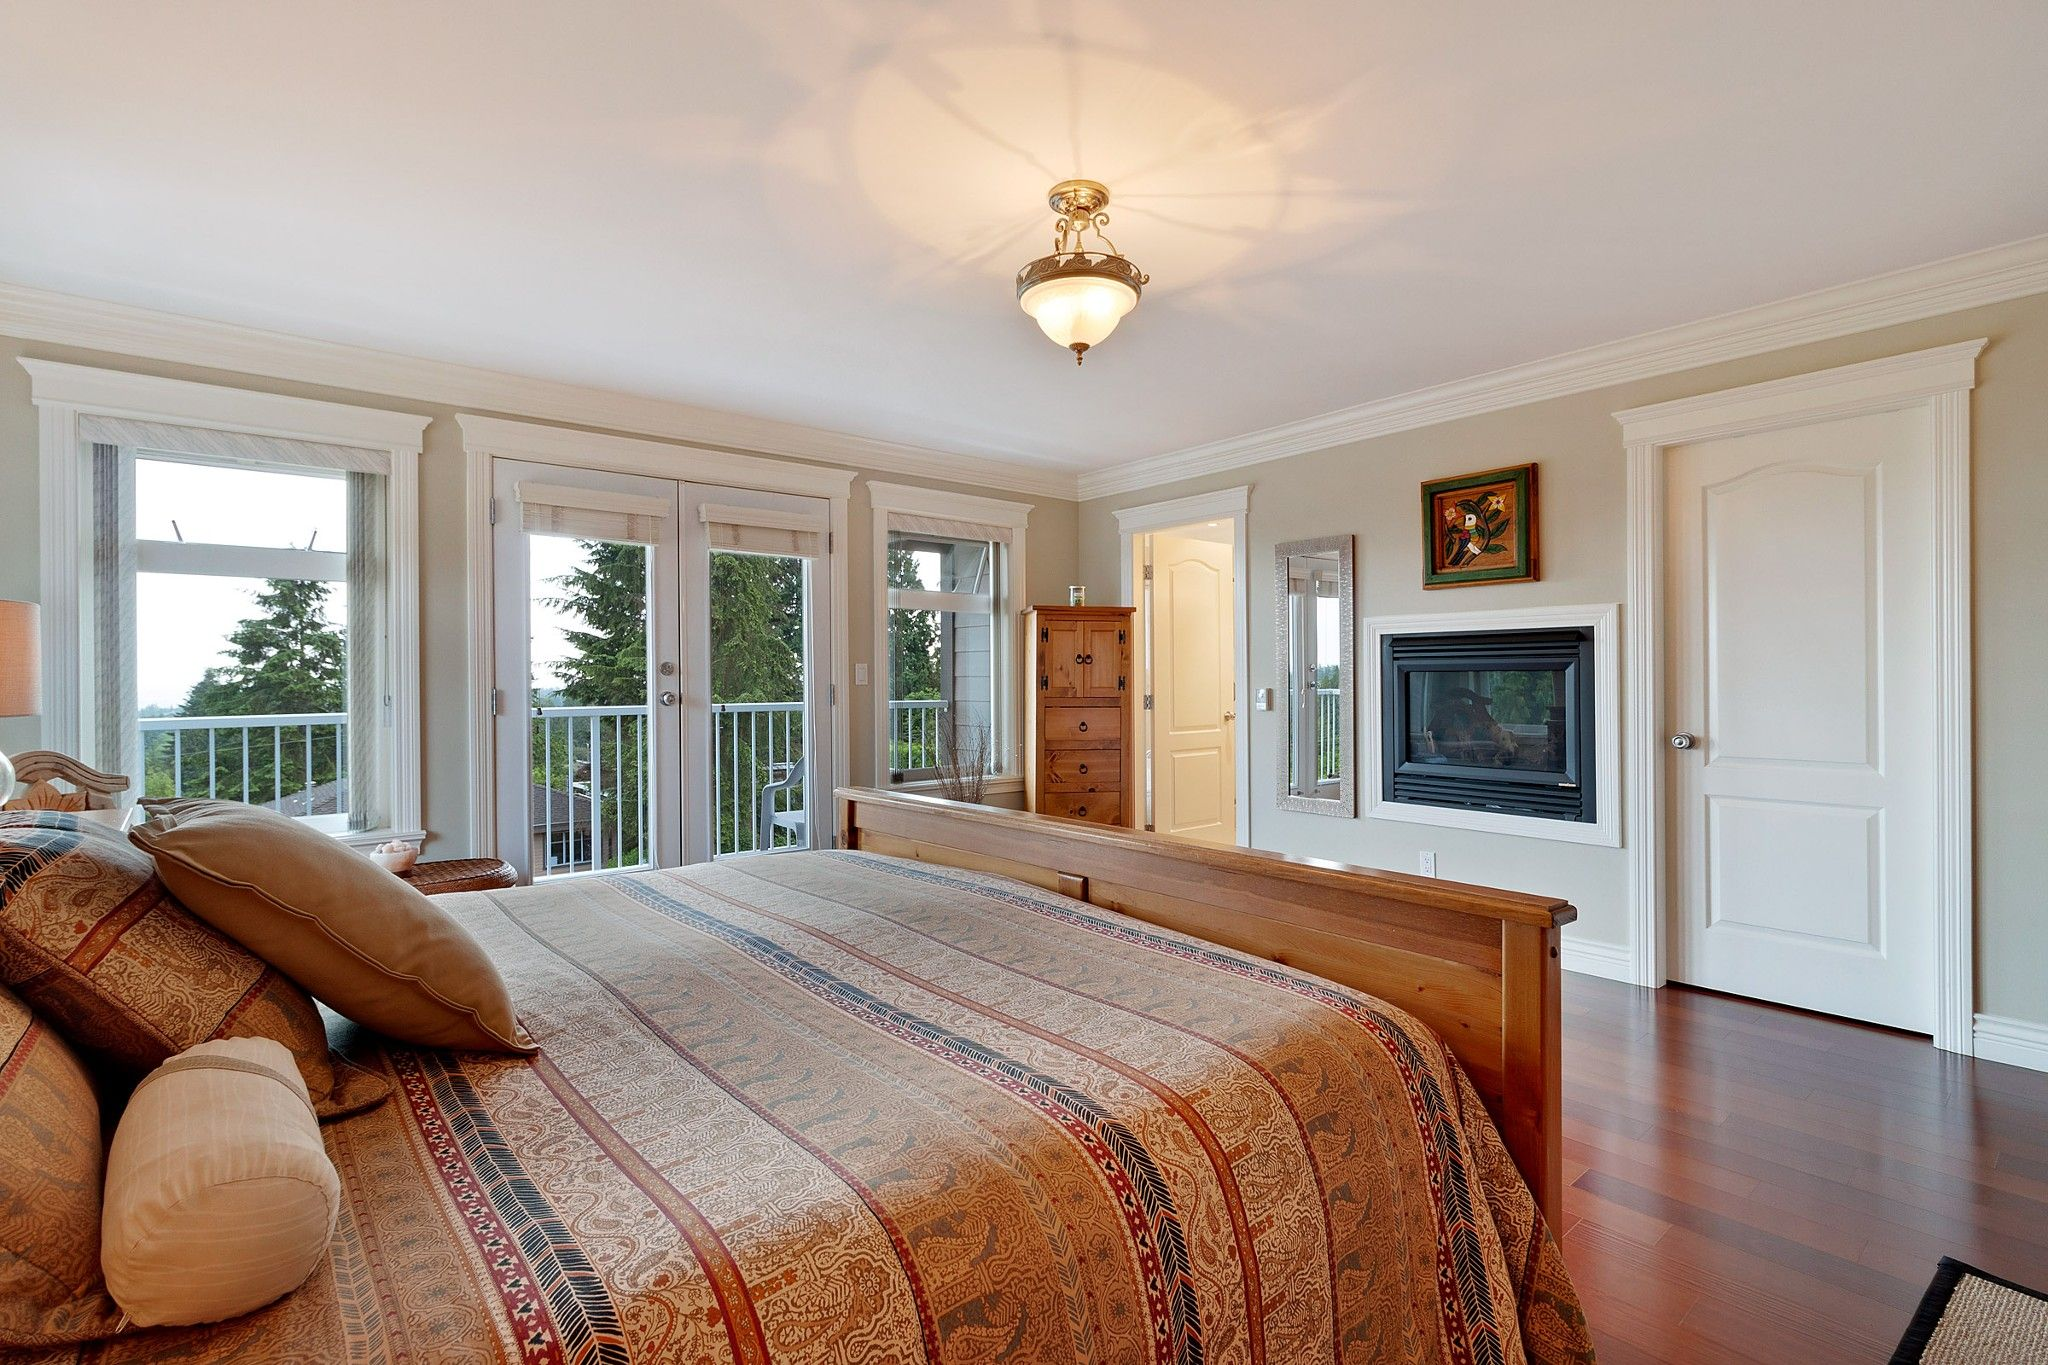 Photo 17: Photos: 1237 DYCK Road in North Vancouver: Lynn Valley House for sale : MLS®# R2374868